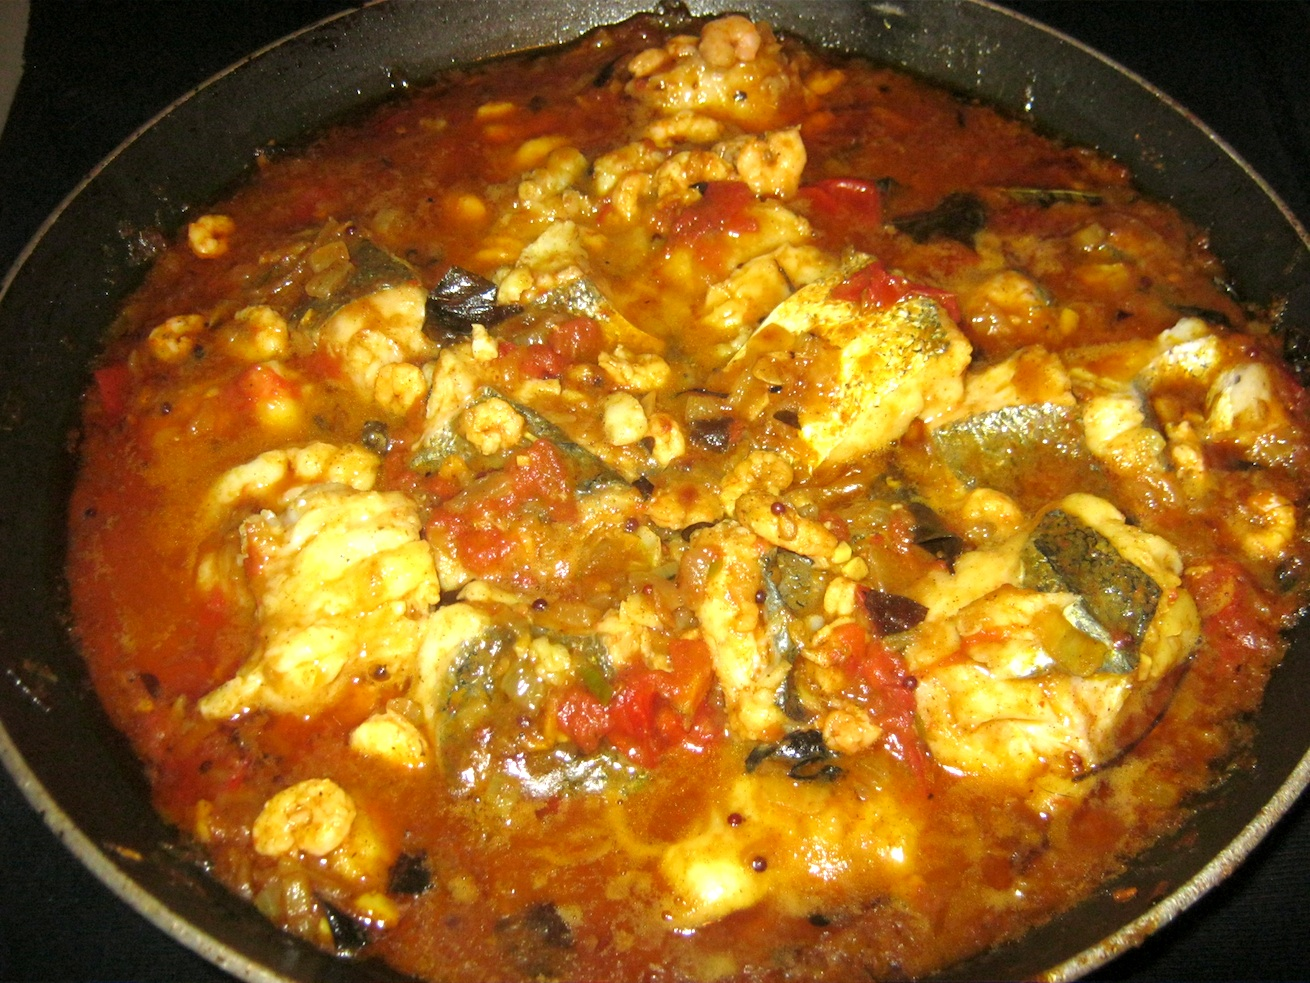 Hot Andhra Fish Curry with hake and prawns ready to be served